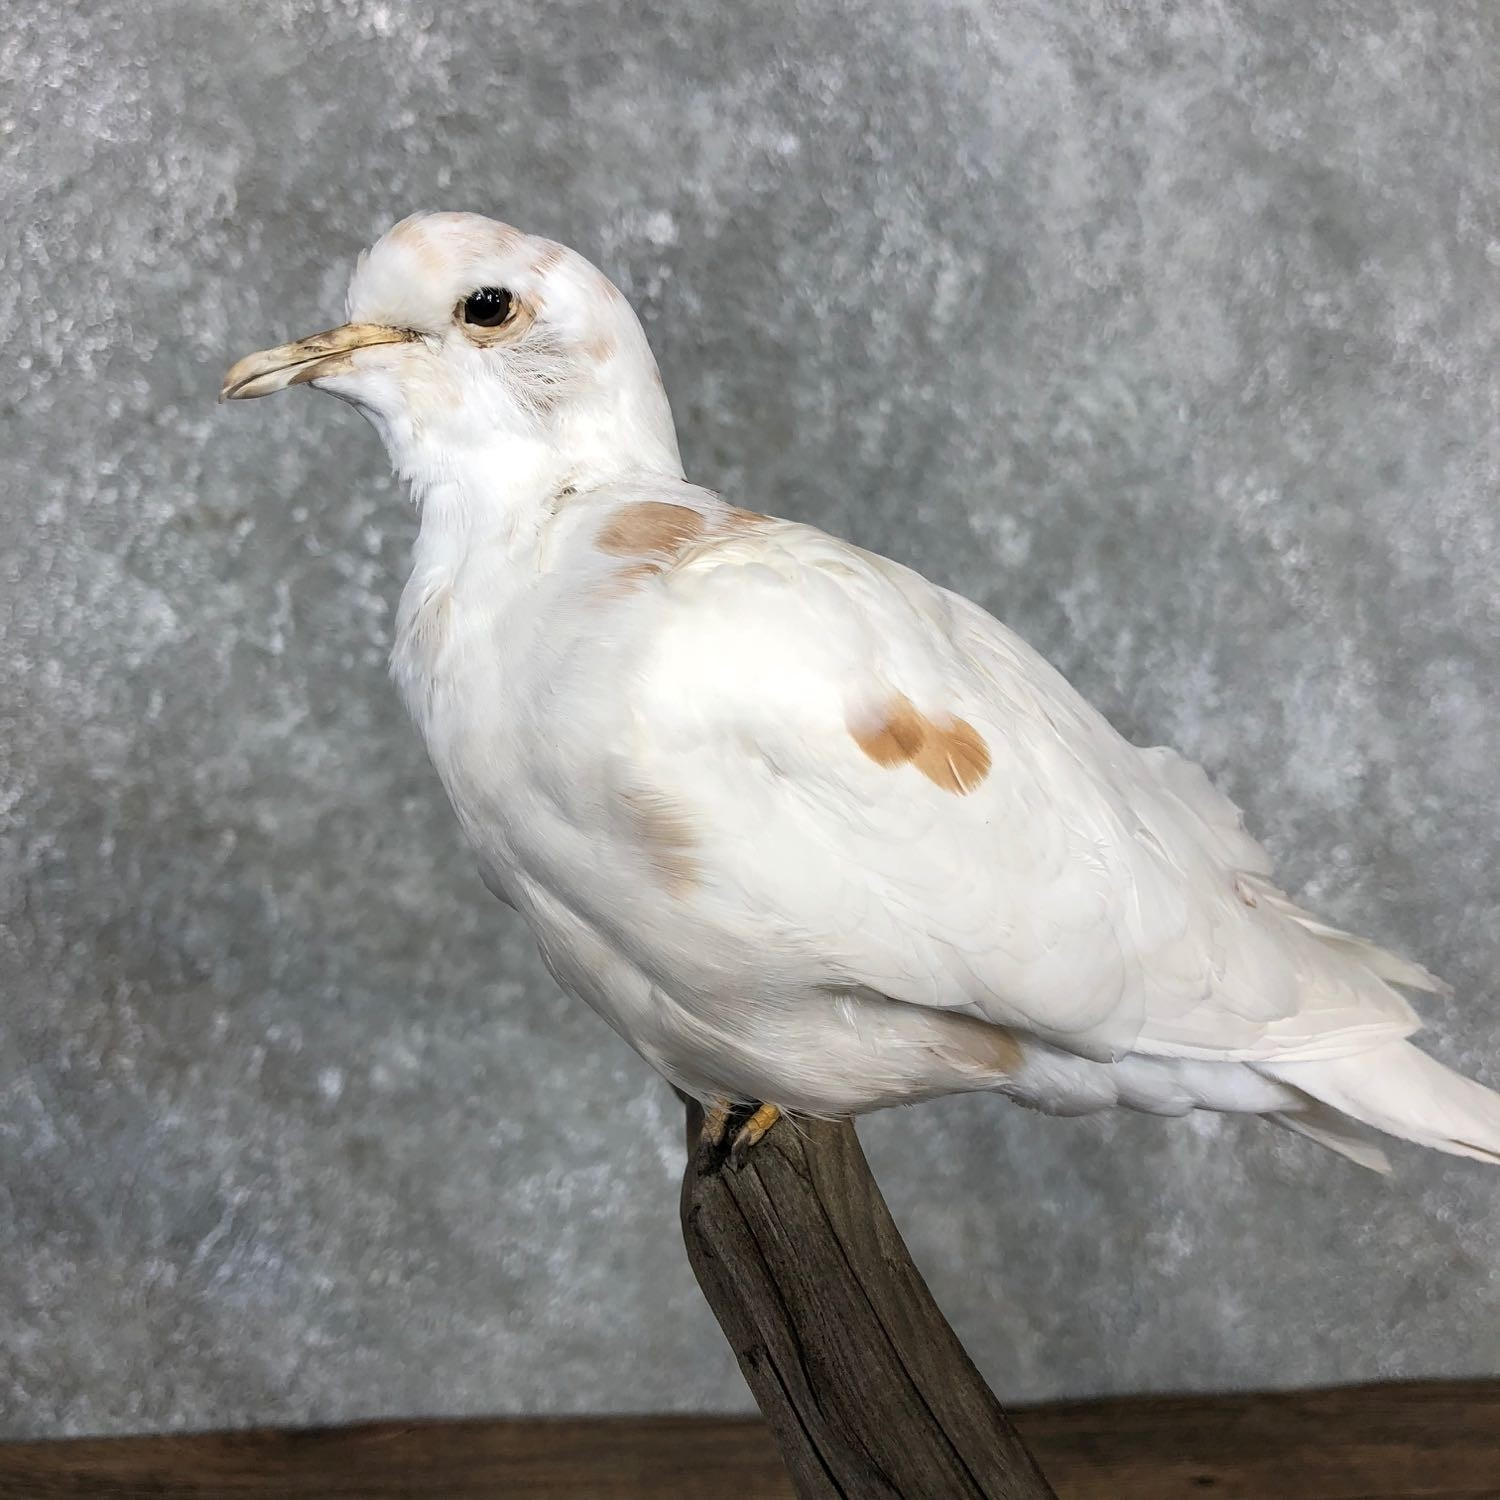 Doves For Sale >> White Collard Doves Life Size Taxidermy Bird Mount 19489 The